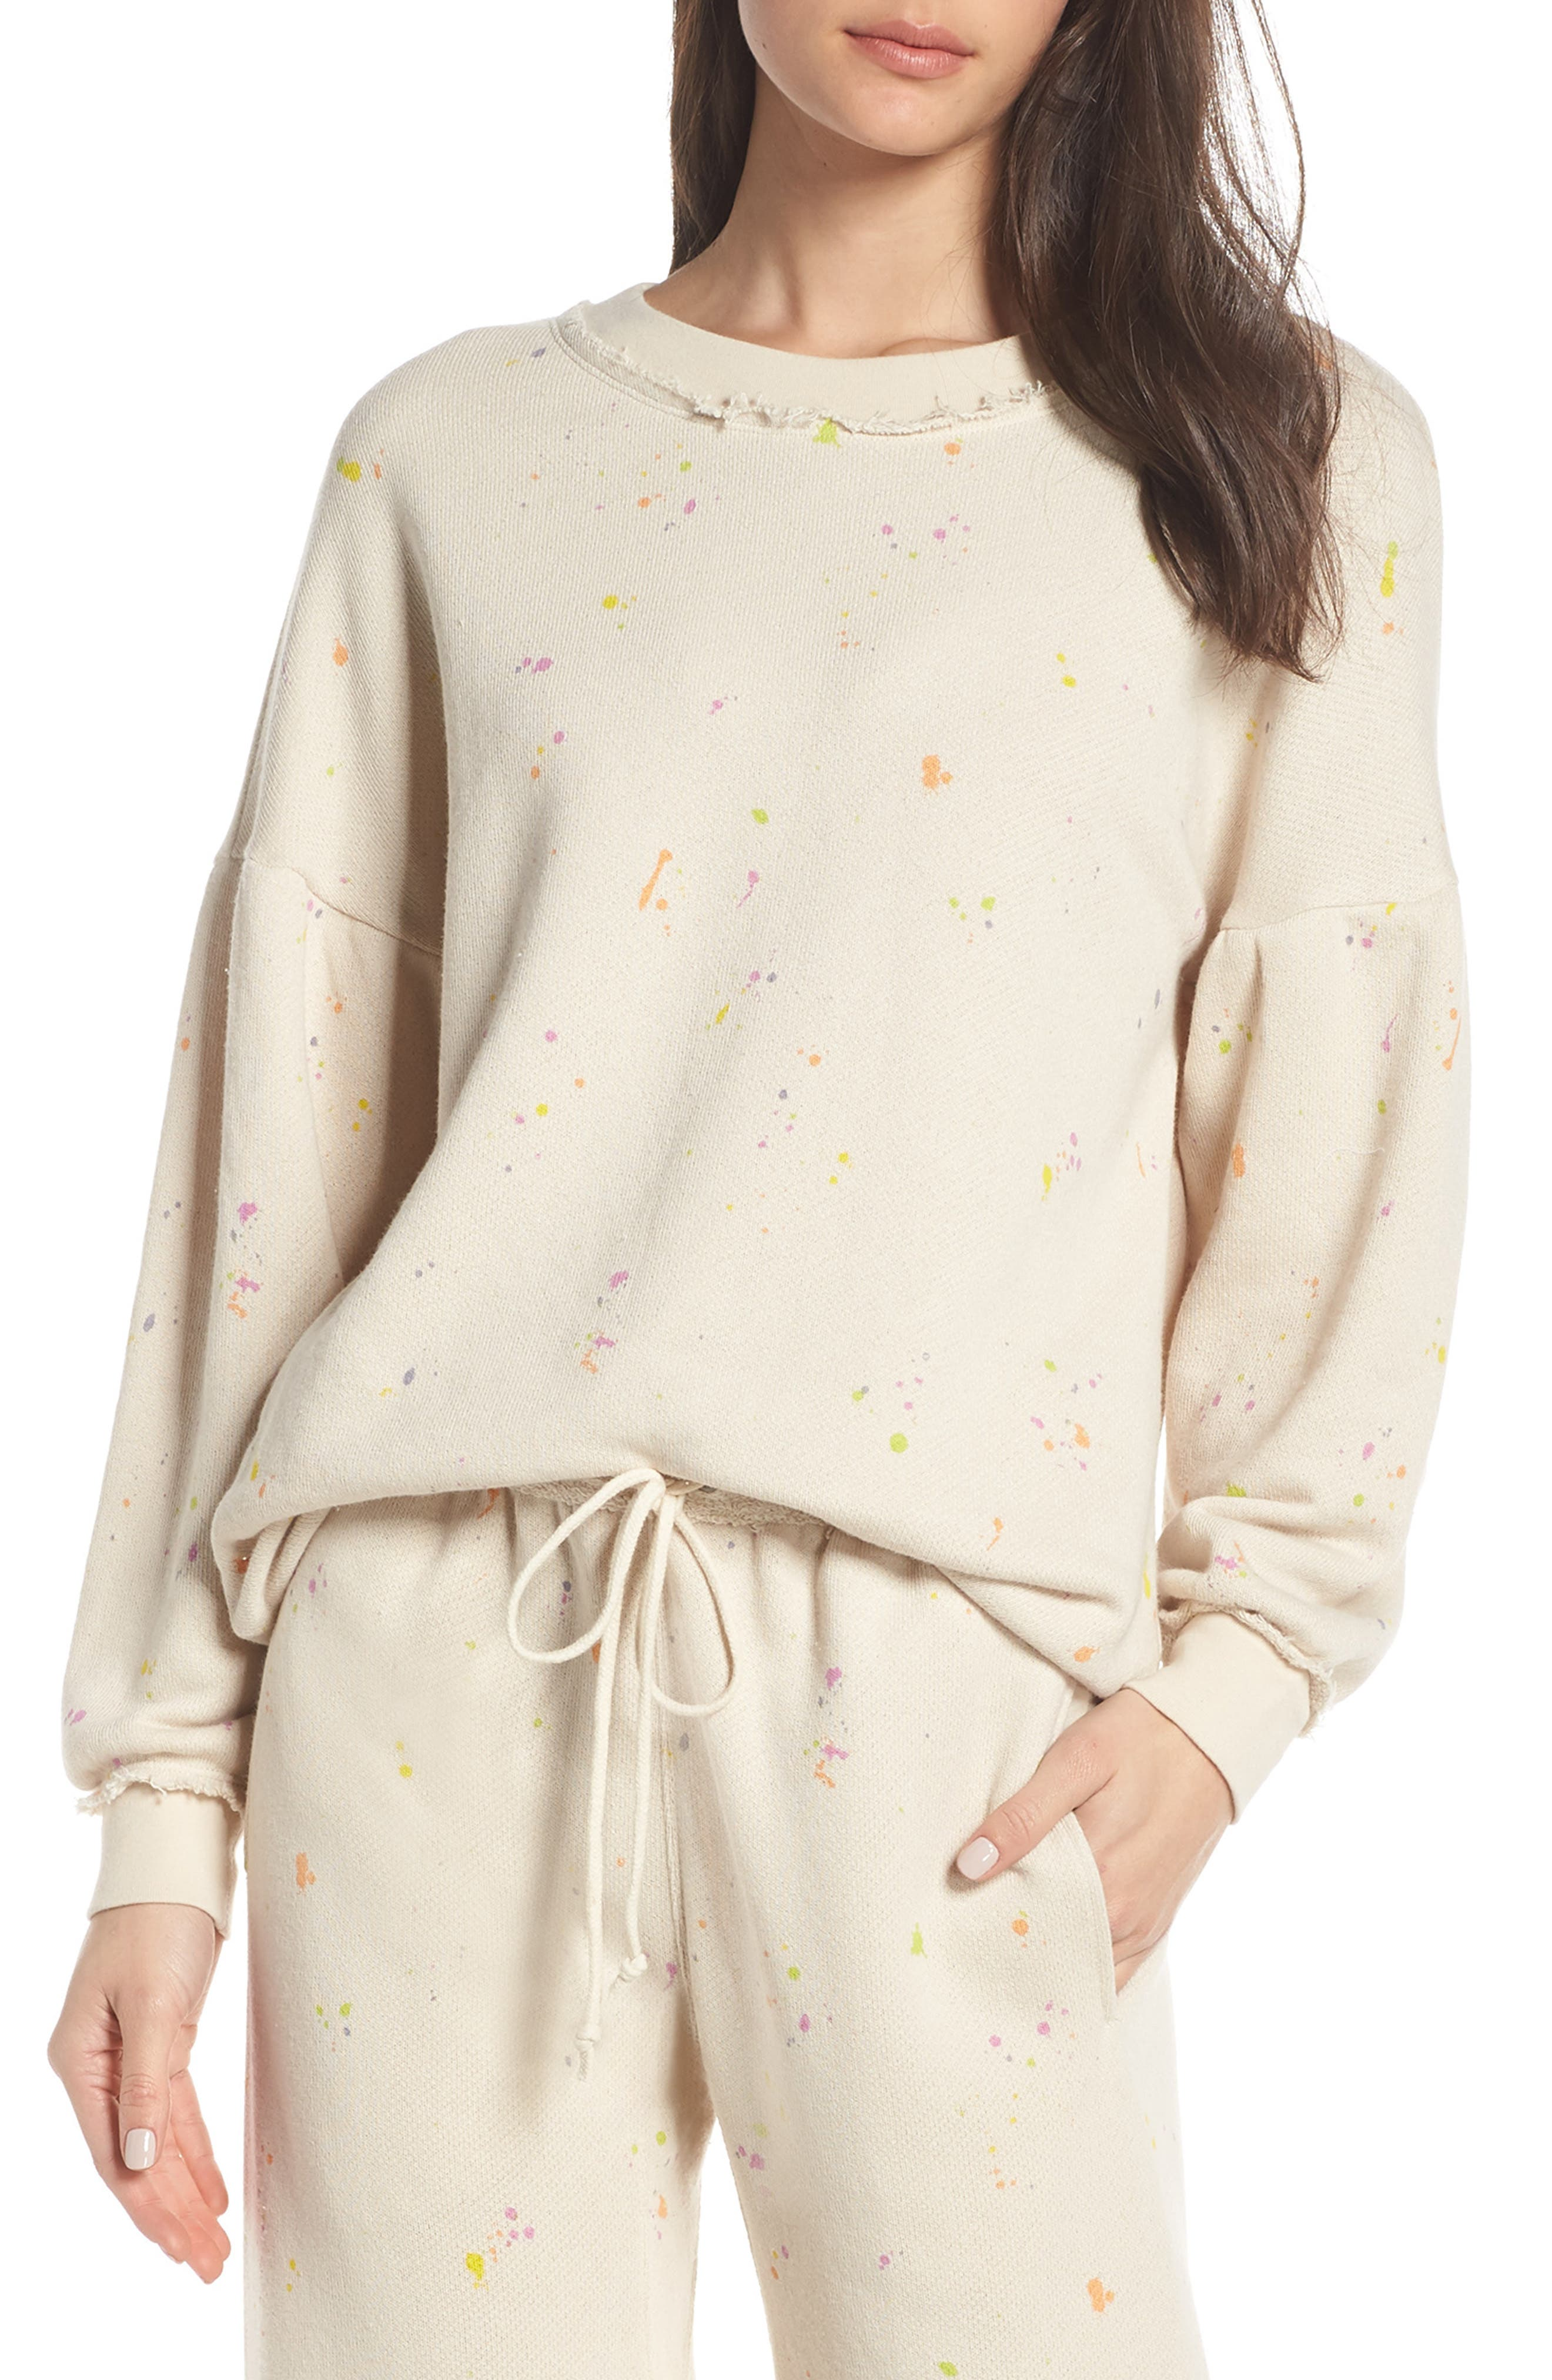 FREE PEOPLE MOVEMENT Make It Count Printed Sweatshirt, Main, color, IVORY